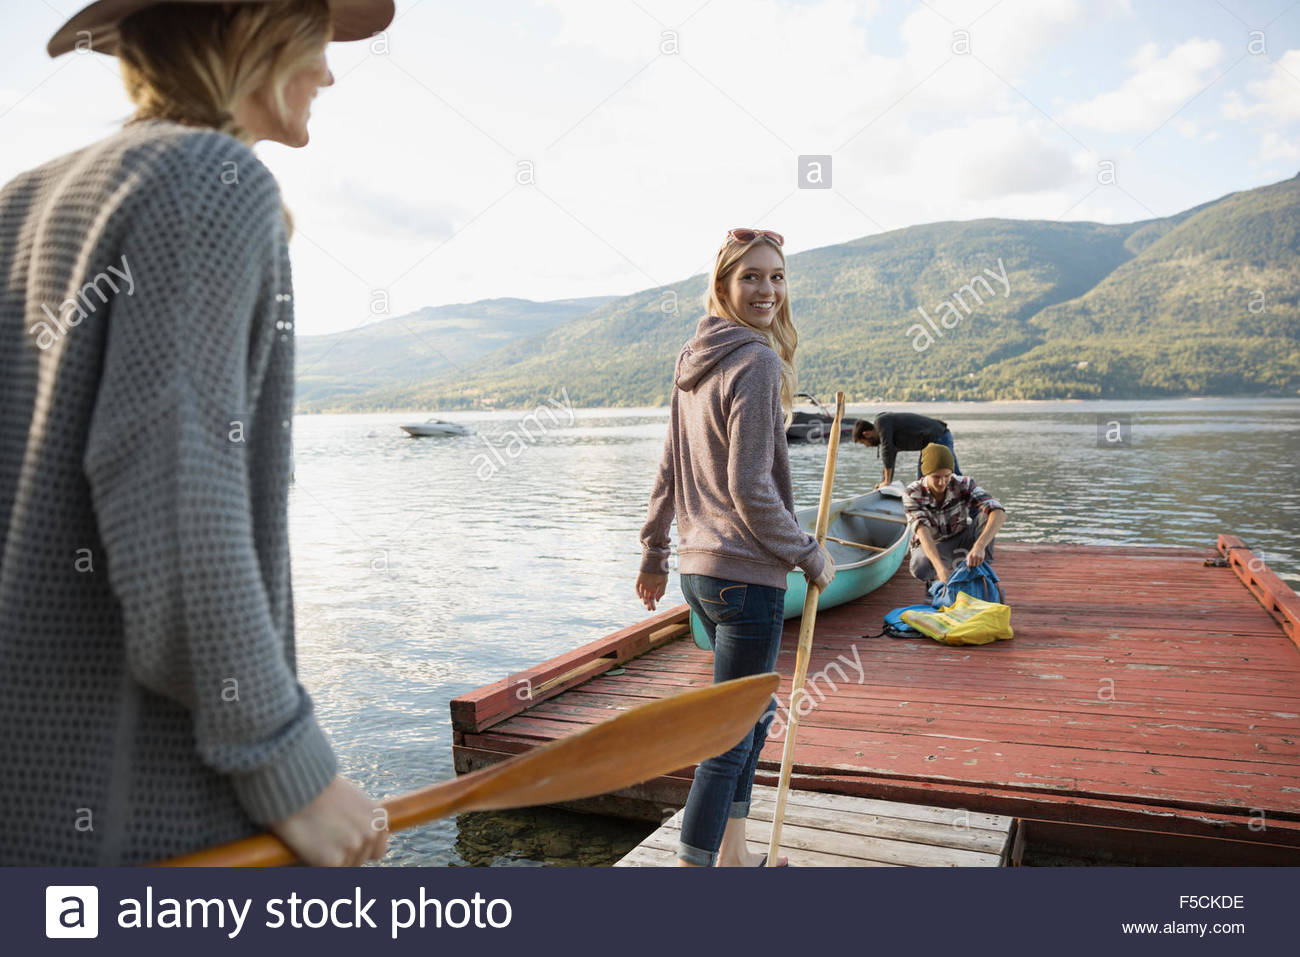 Young women carrying canoe paddles on lake dock - Stock Image